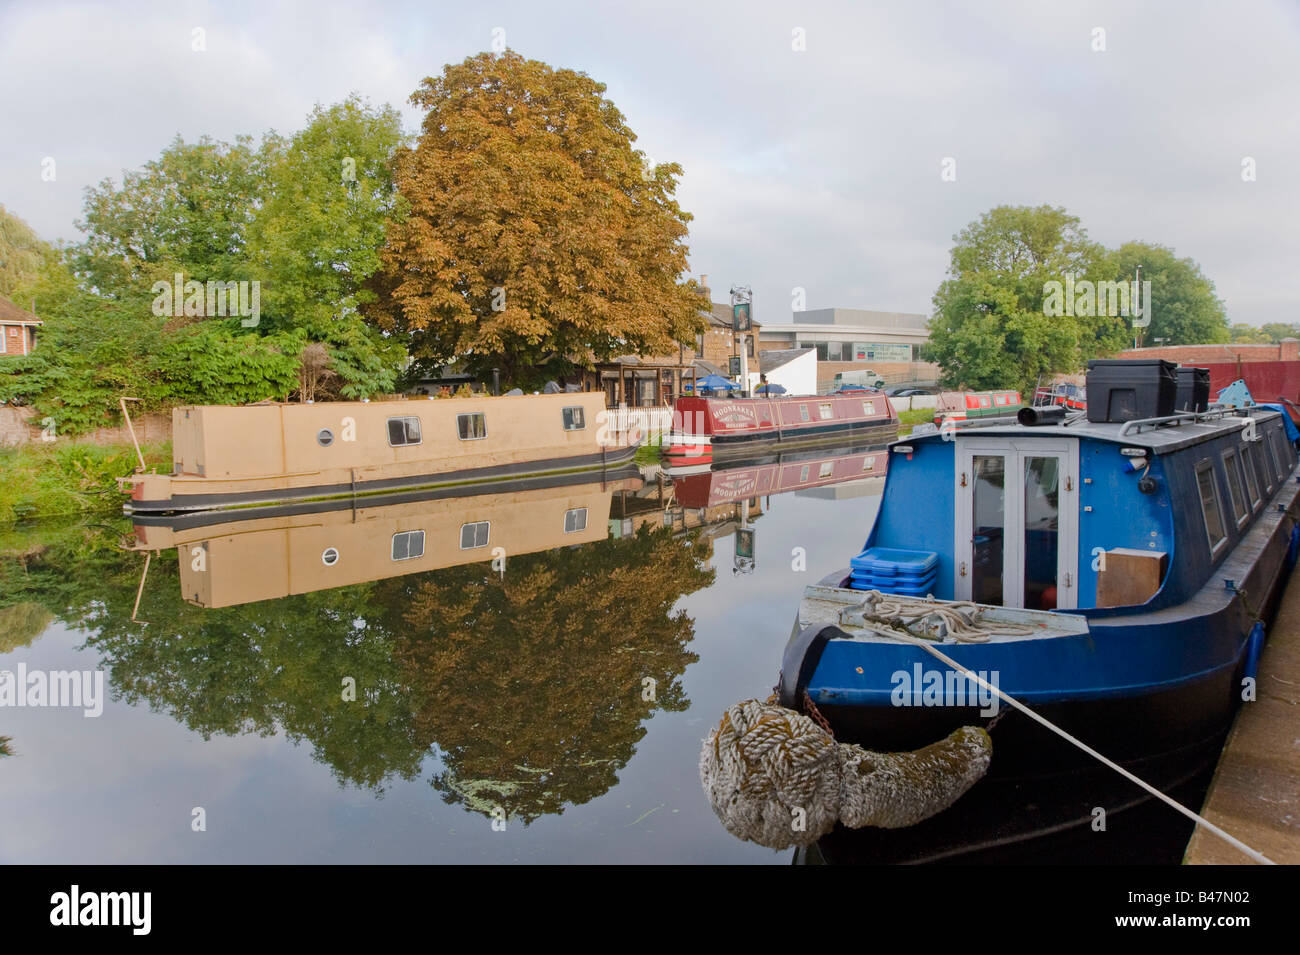 House boats on the grand union canal Uxbridge Hillingdon England UK Stock Photo